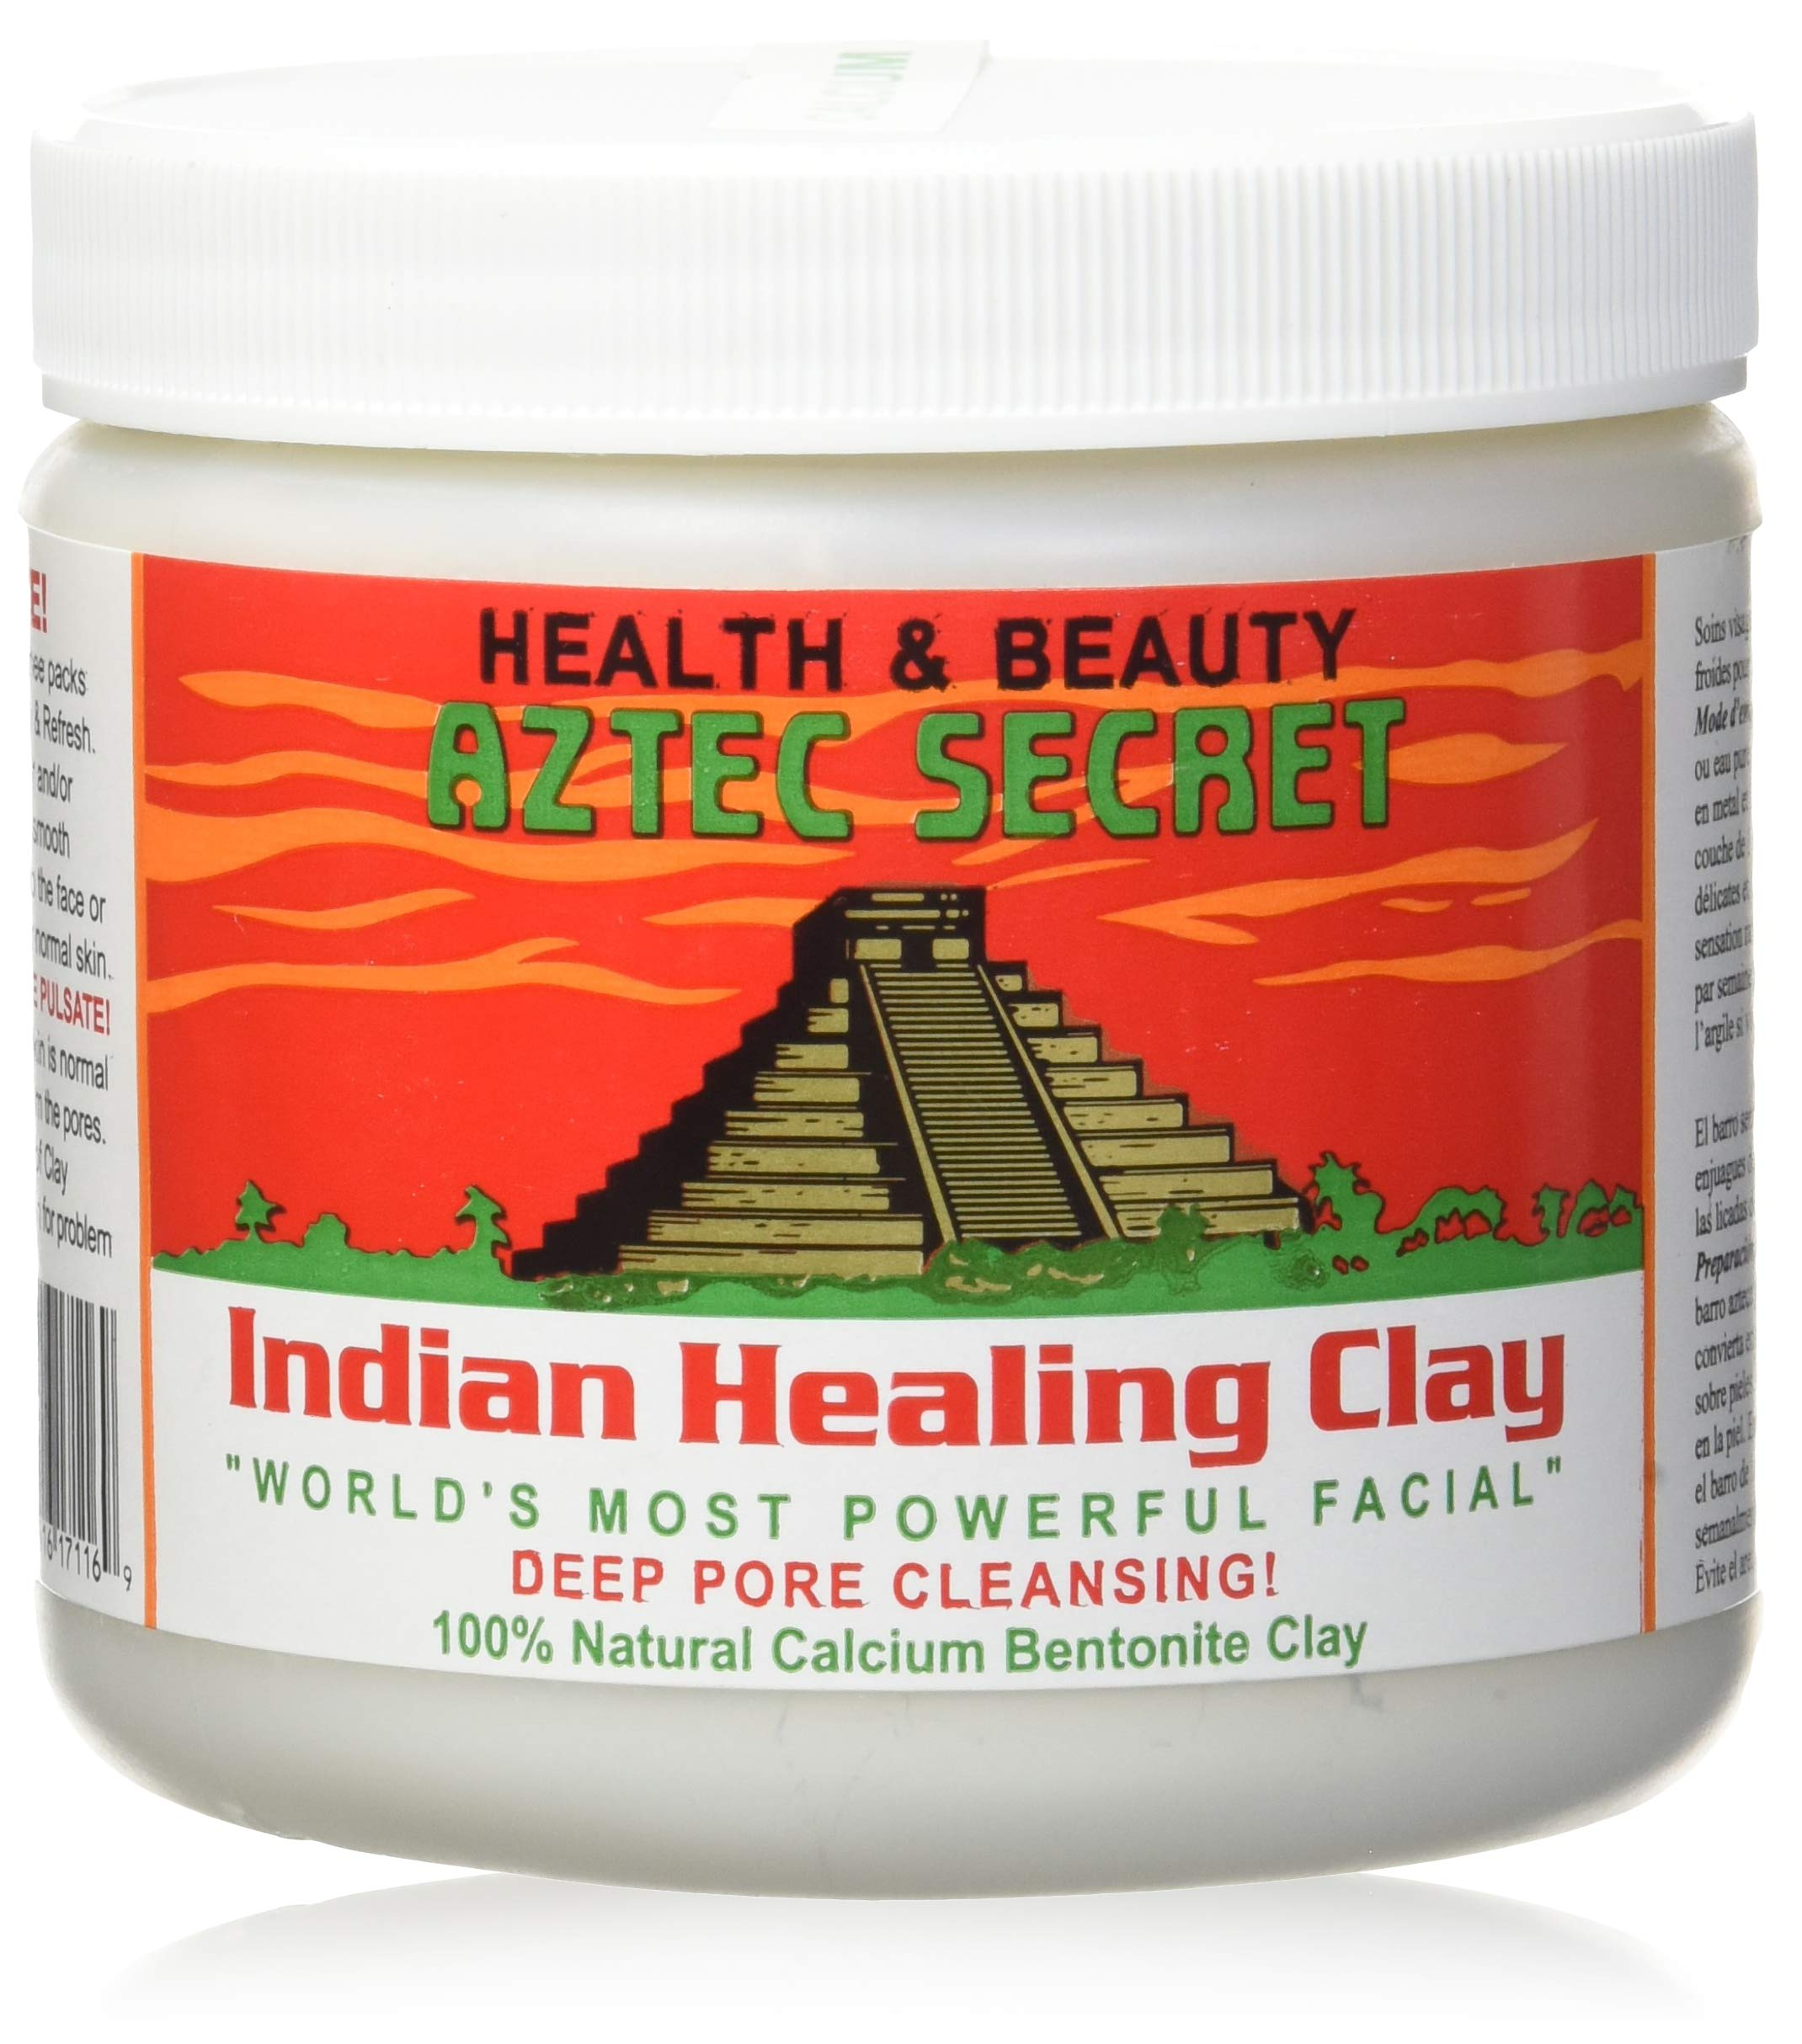 Just For Men Control Gx Grey Reducing Shampoo 5 Fluid Wiring Light Switch Common Including How To Wire A Two Way Ehow Aztec Secret Indian Healing Clay 1 Lb Deep Pore Cleansing Facial